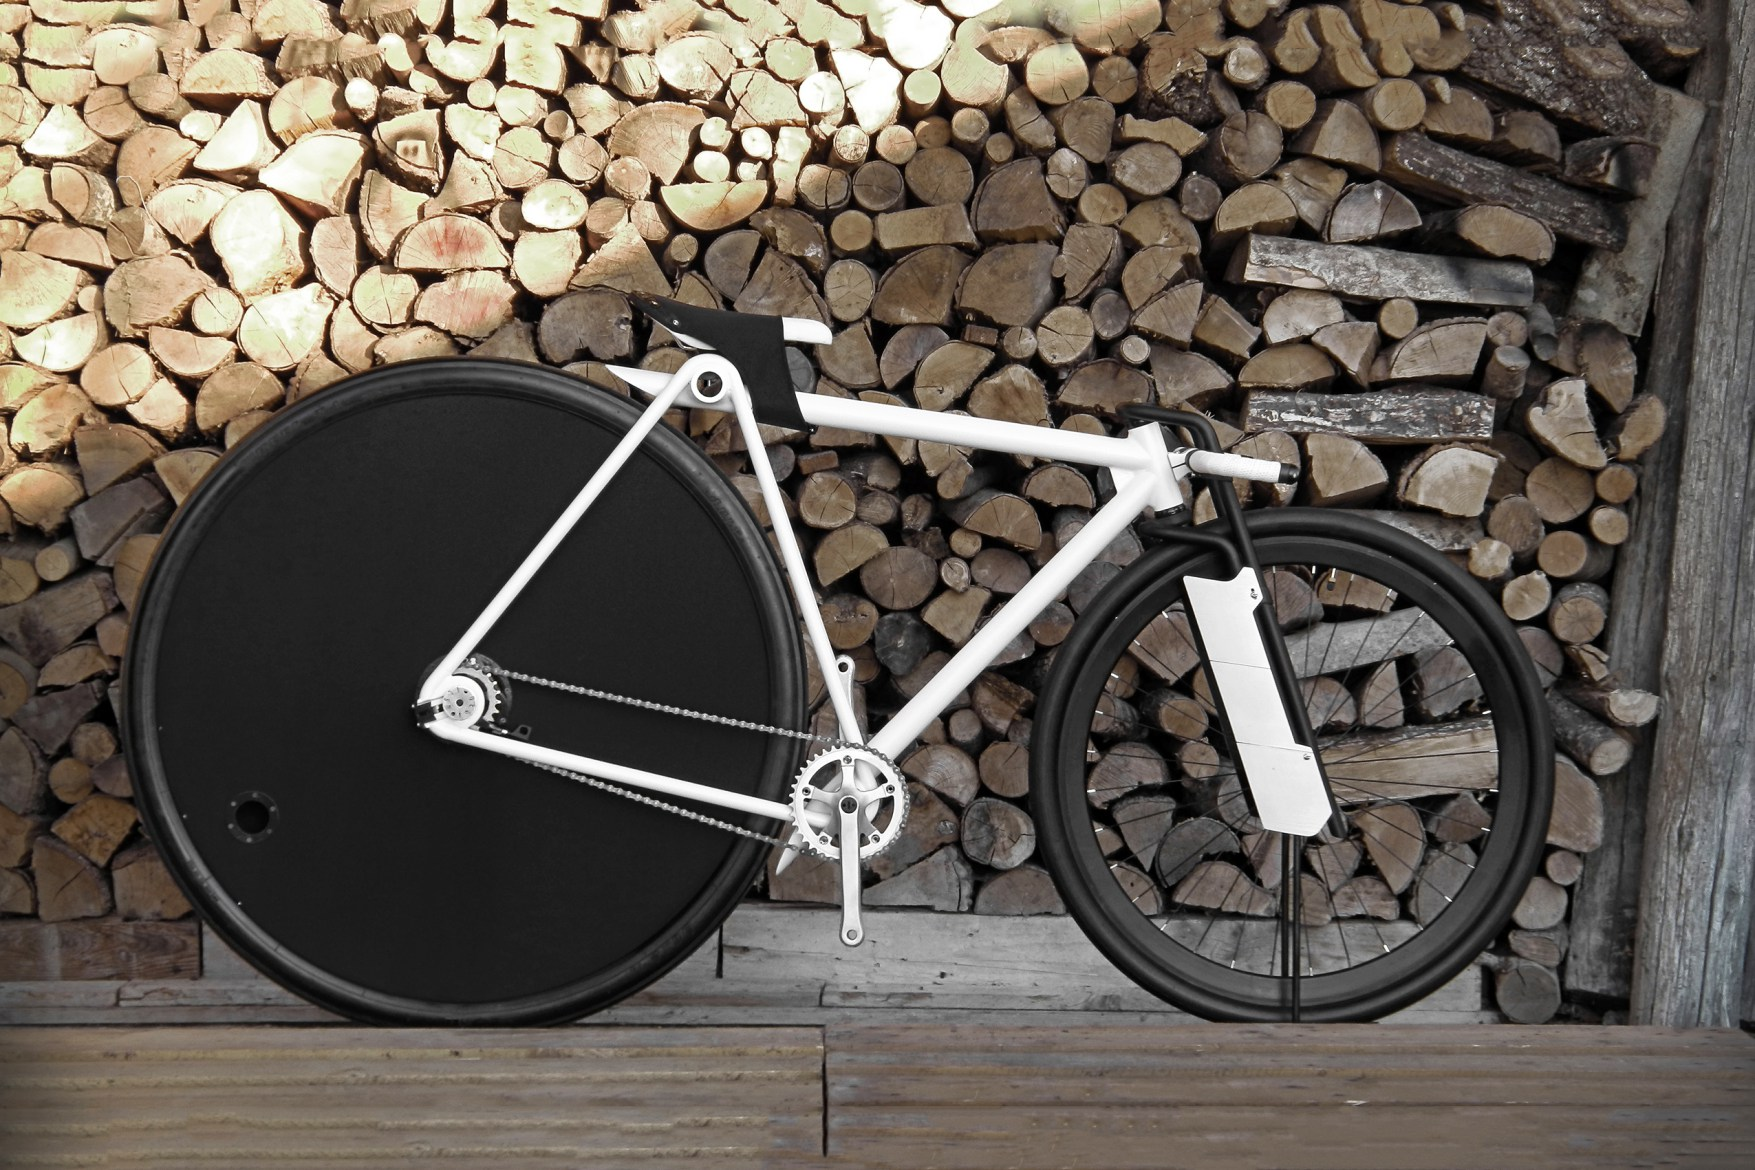 new-bicycle-prototype-challenges-wheel-ratio-ergonomic-design-1